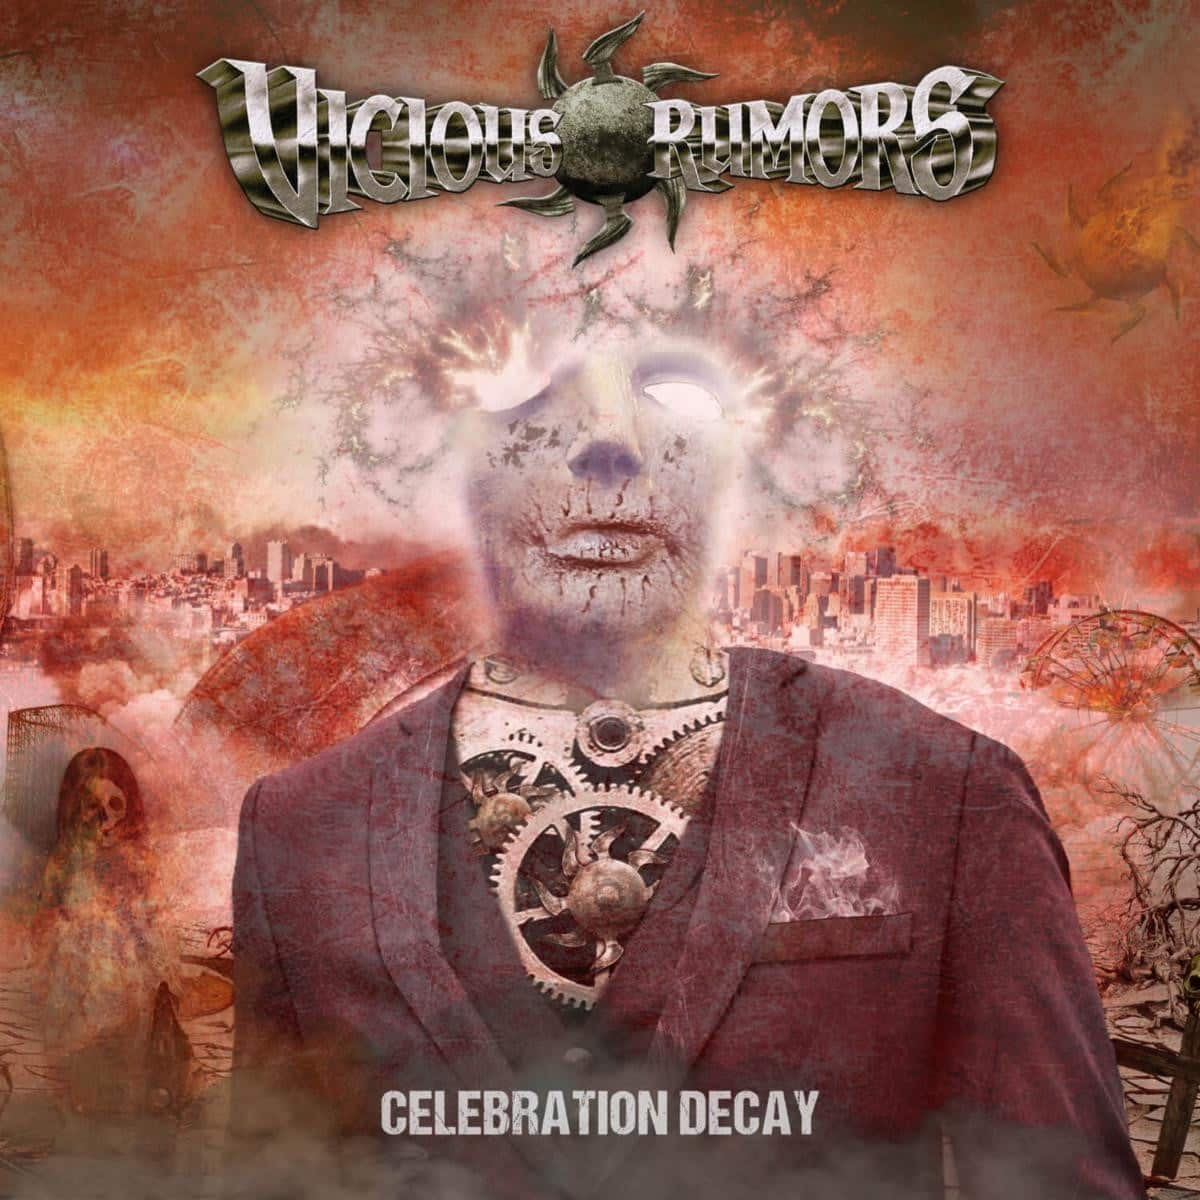 Vicious Rumors Celebration Decay